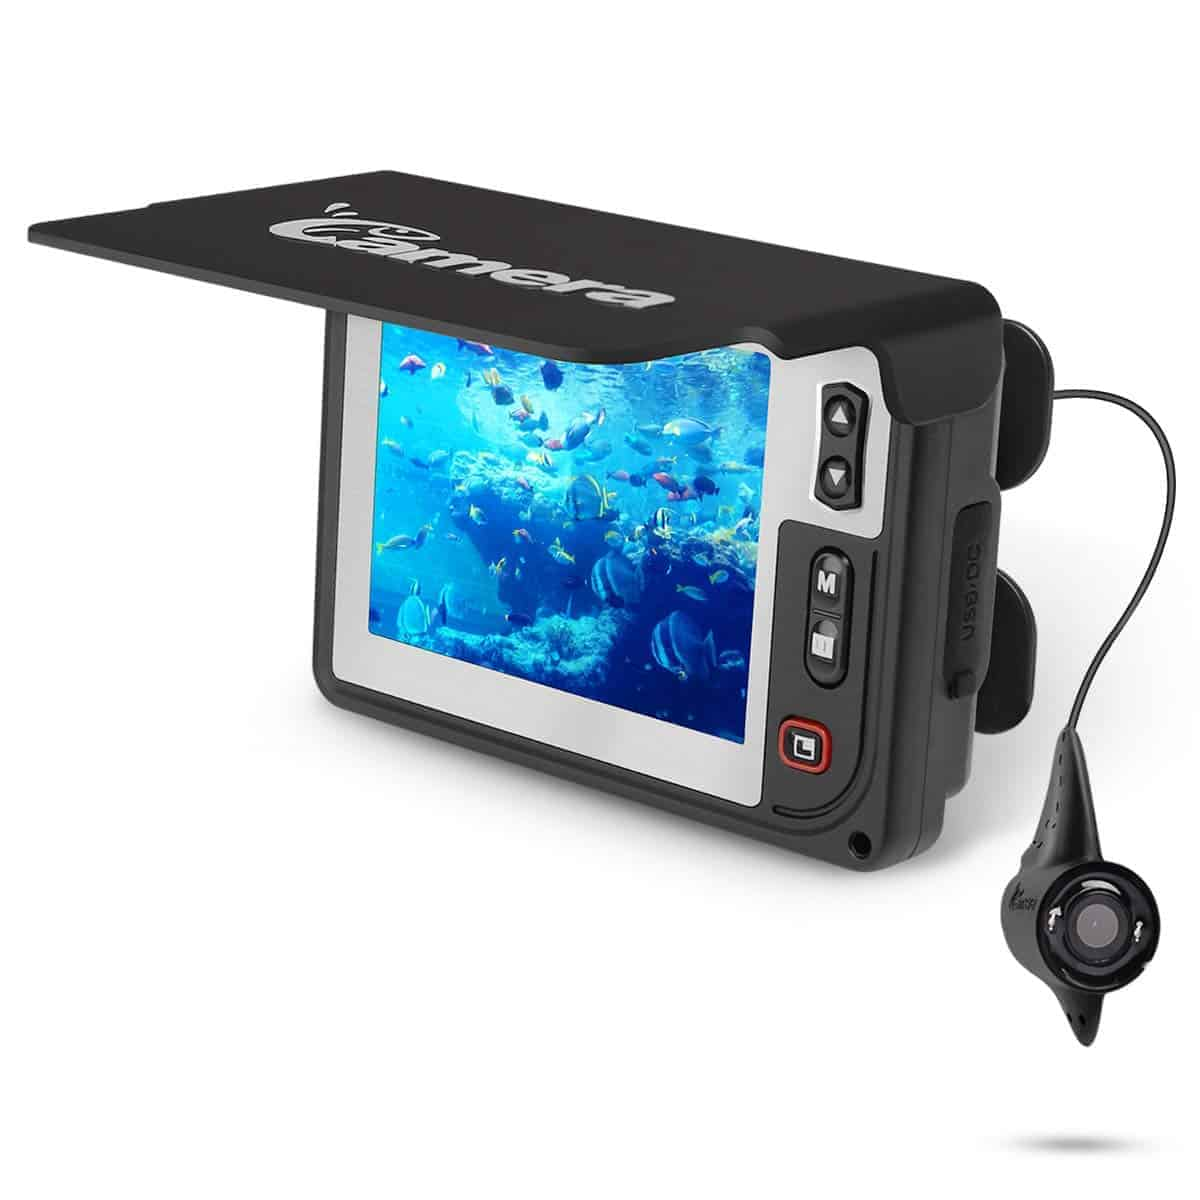 Underwater Fishing Camera , Moocor Portable Fishing Finder Camera HD1000 TVL Infrared LED Waterproof Camera with 3.5 Inch LCD Monitor